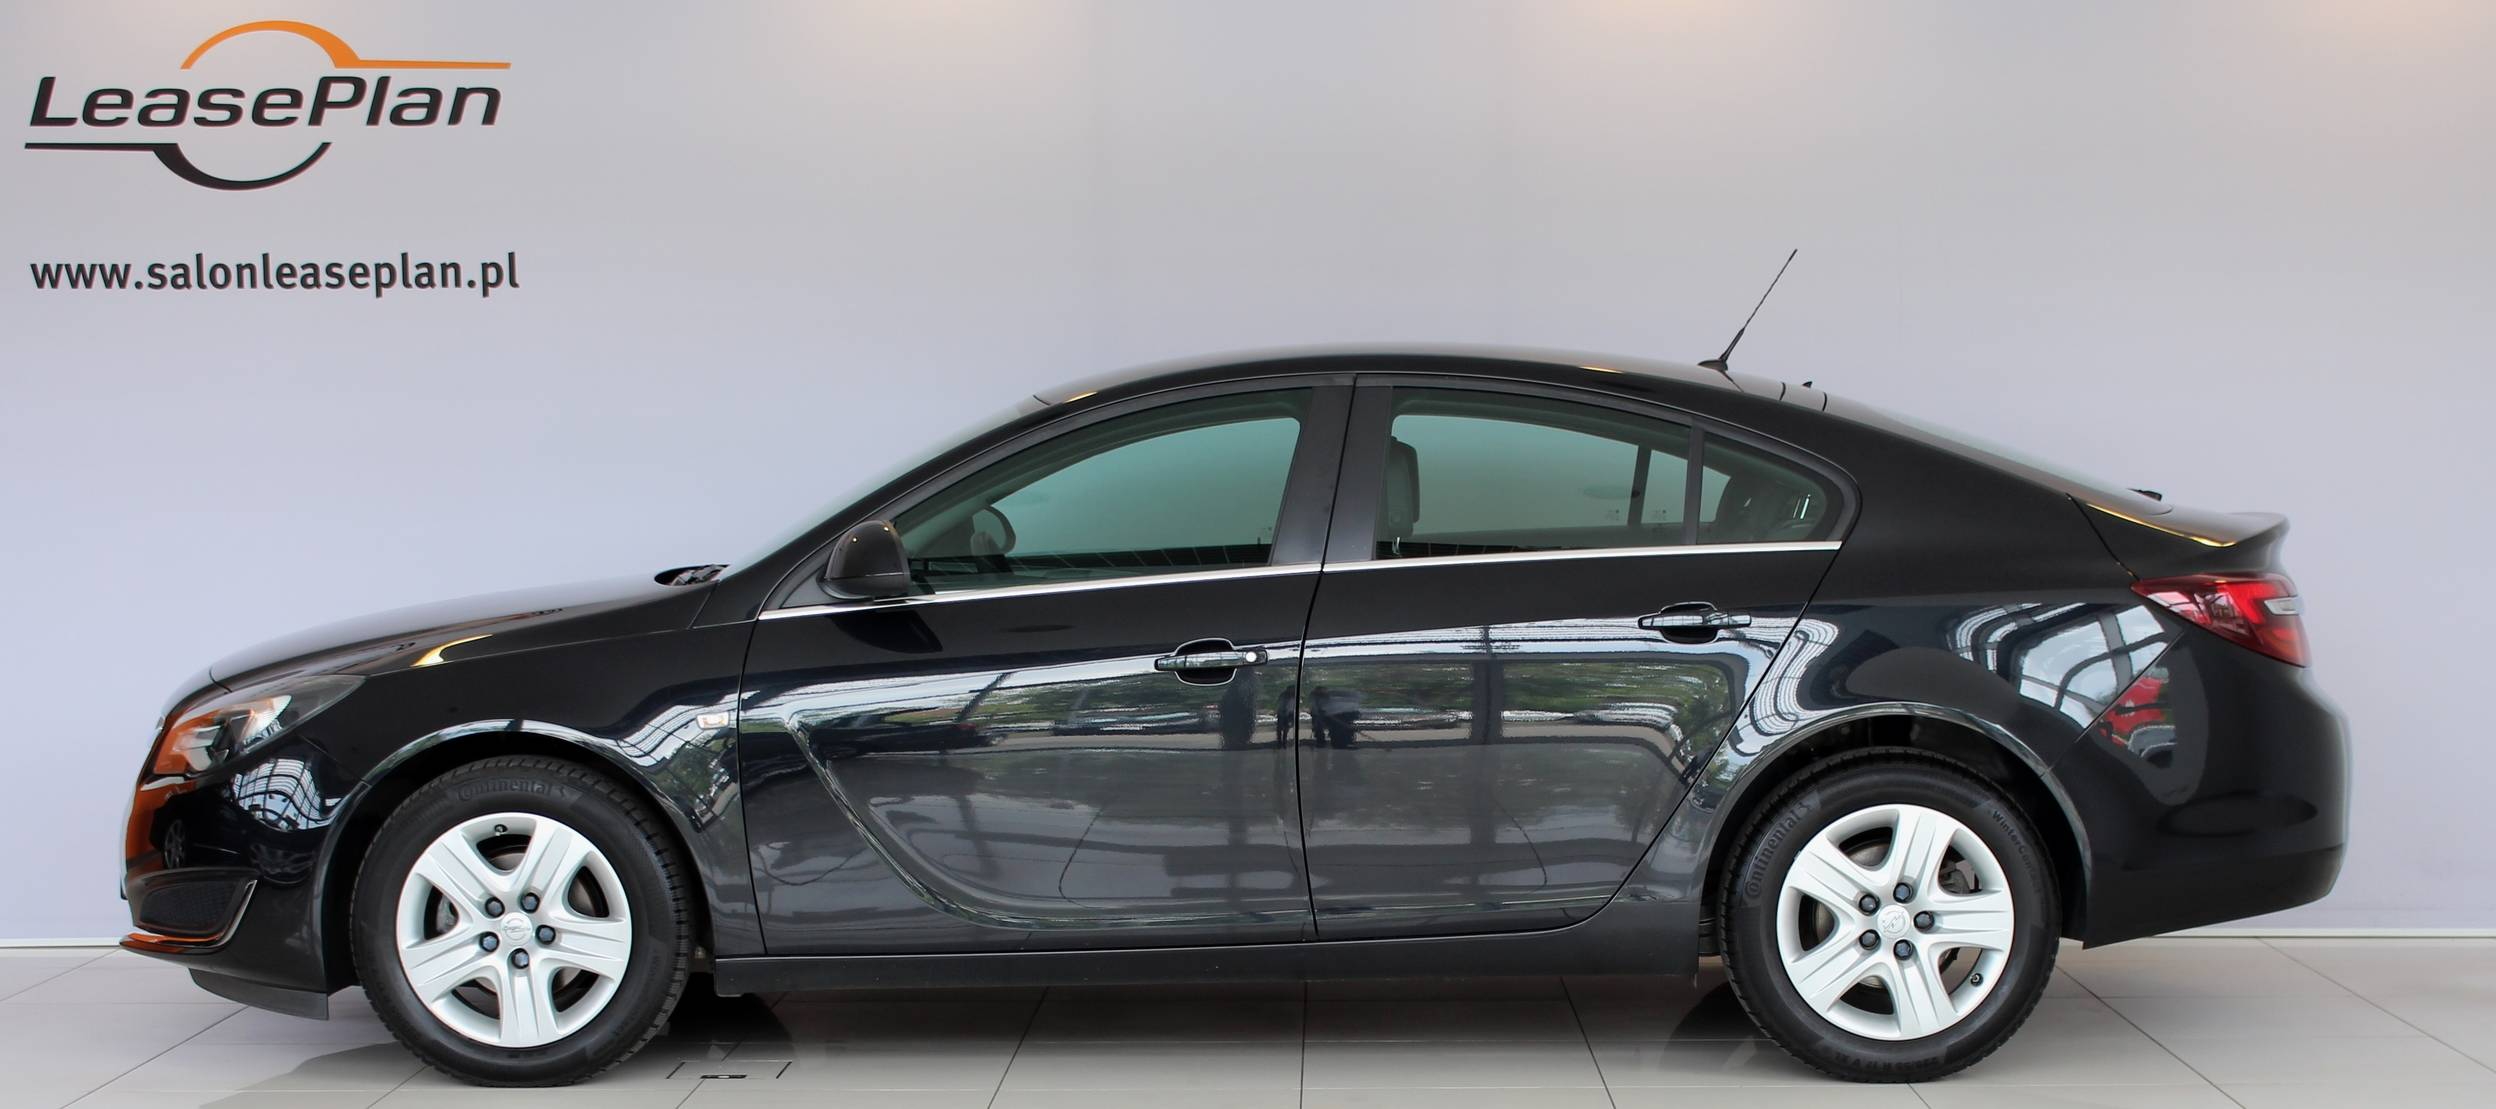 Opel Insignia 2.0 CDTI Aut., Business Edition detail2